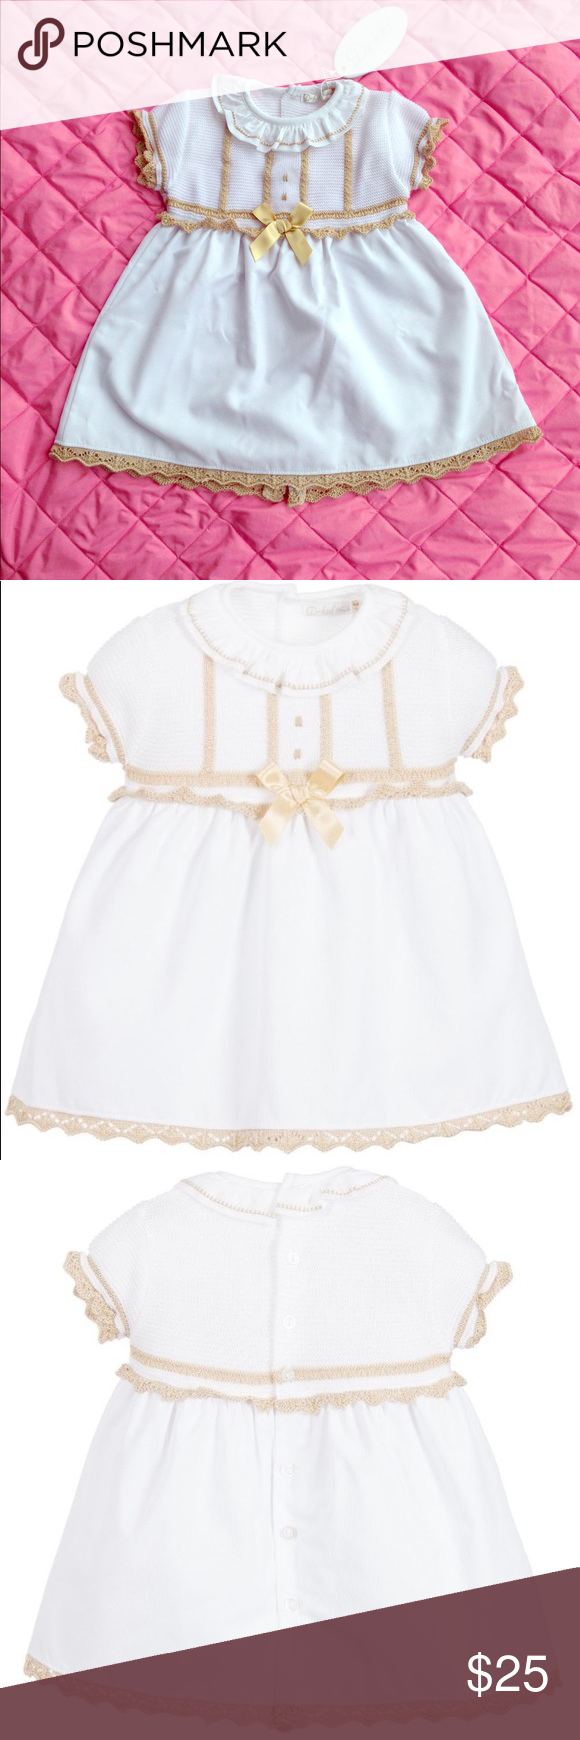 Dr Kid White Baby Girl Dress 12 Month Old New Baby Dress Baby Girl White Dress Baby Girl Dress [ 1740 x 580 Pixel ]